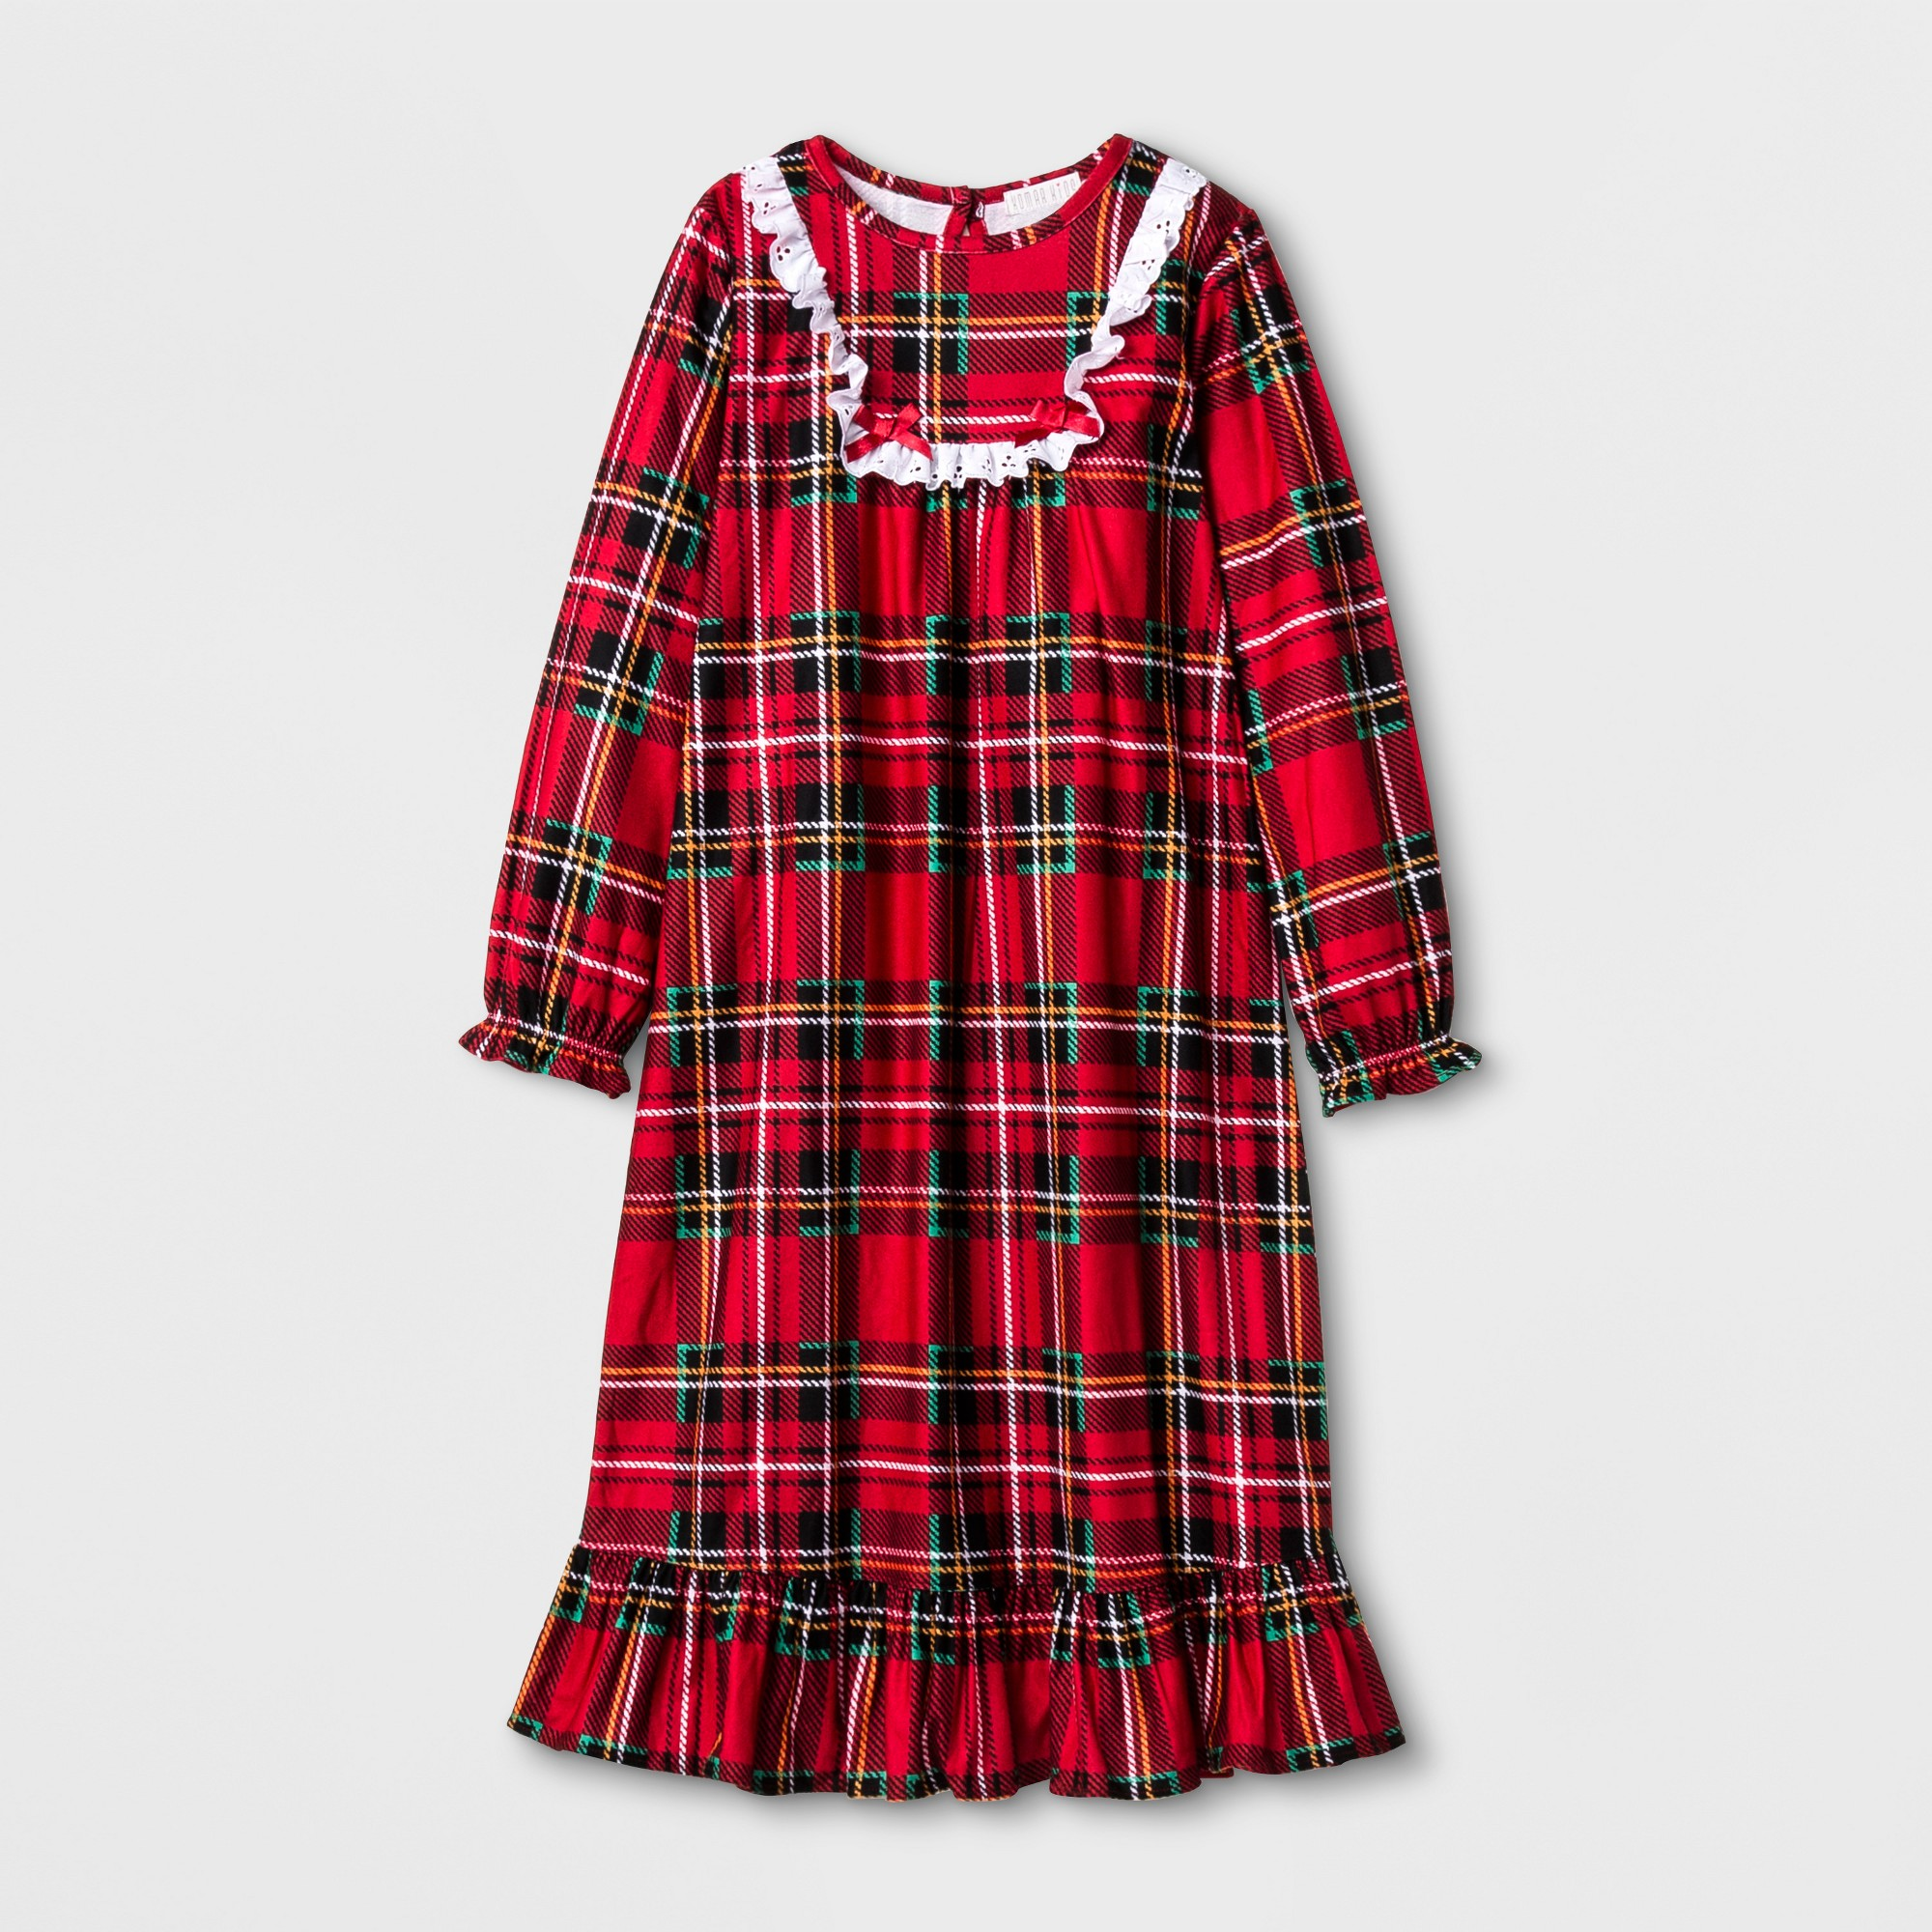 Red flannel nightgown  Komar Kids Toddler Girlsu Granny Nightgown  Red Plaid XL  Red